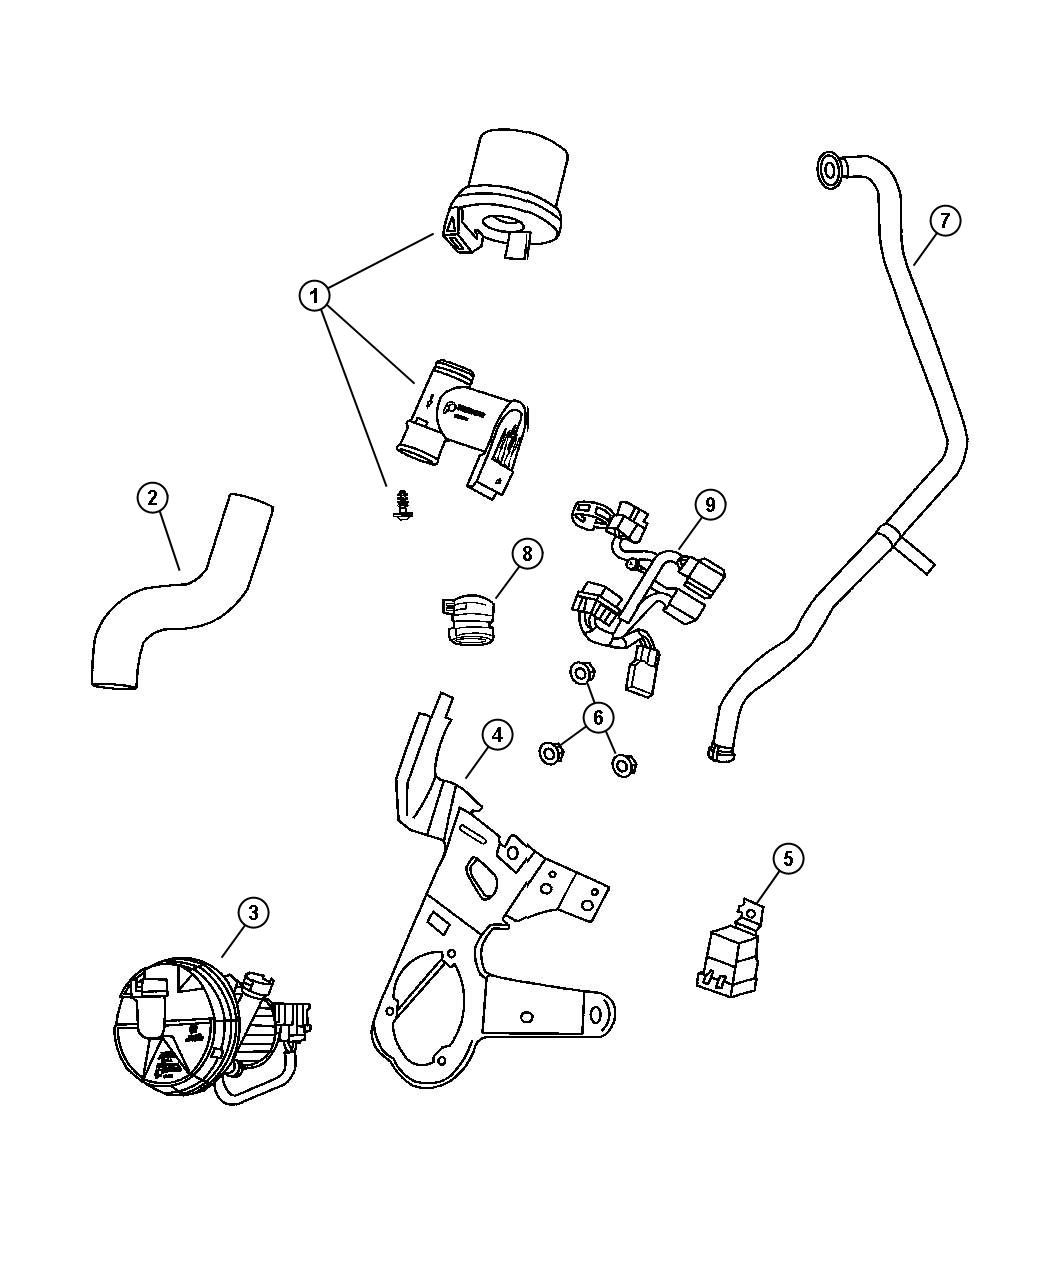 Dodge Stratus Pump. Air injection. Engine, system